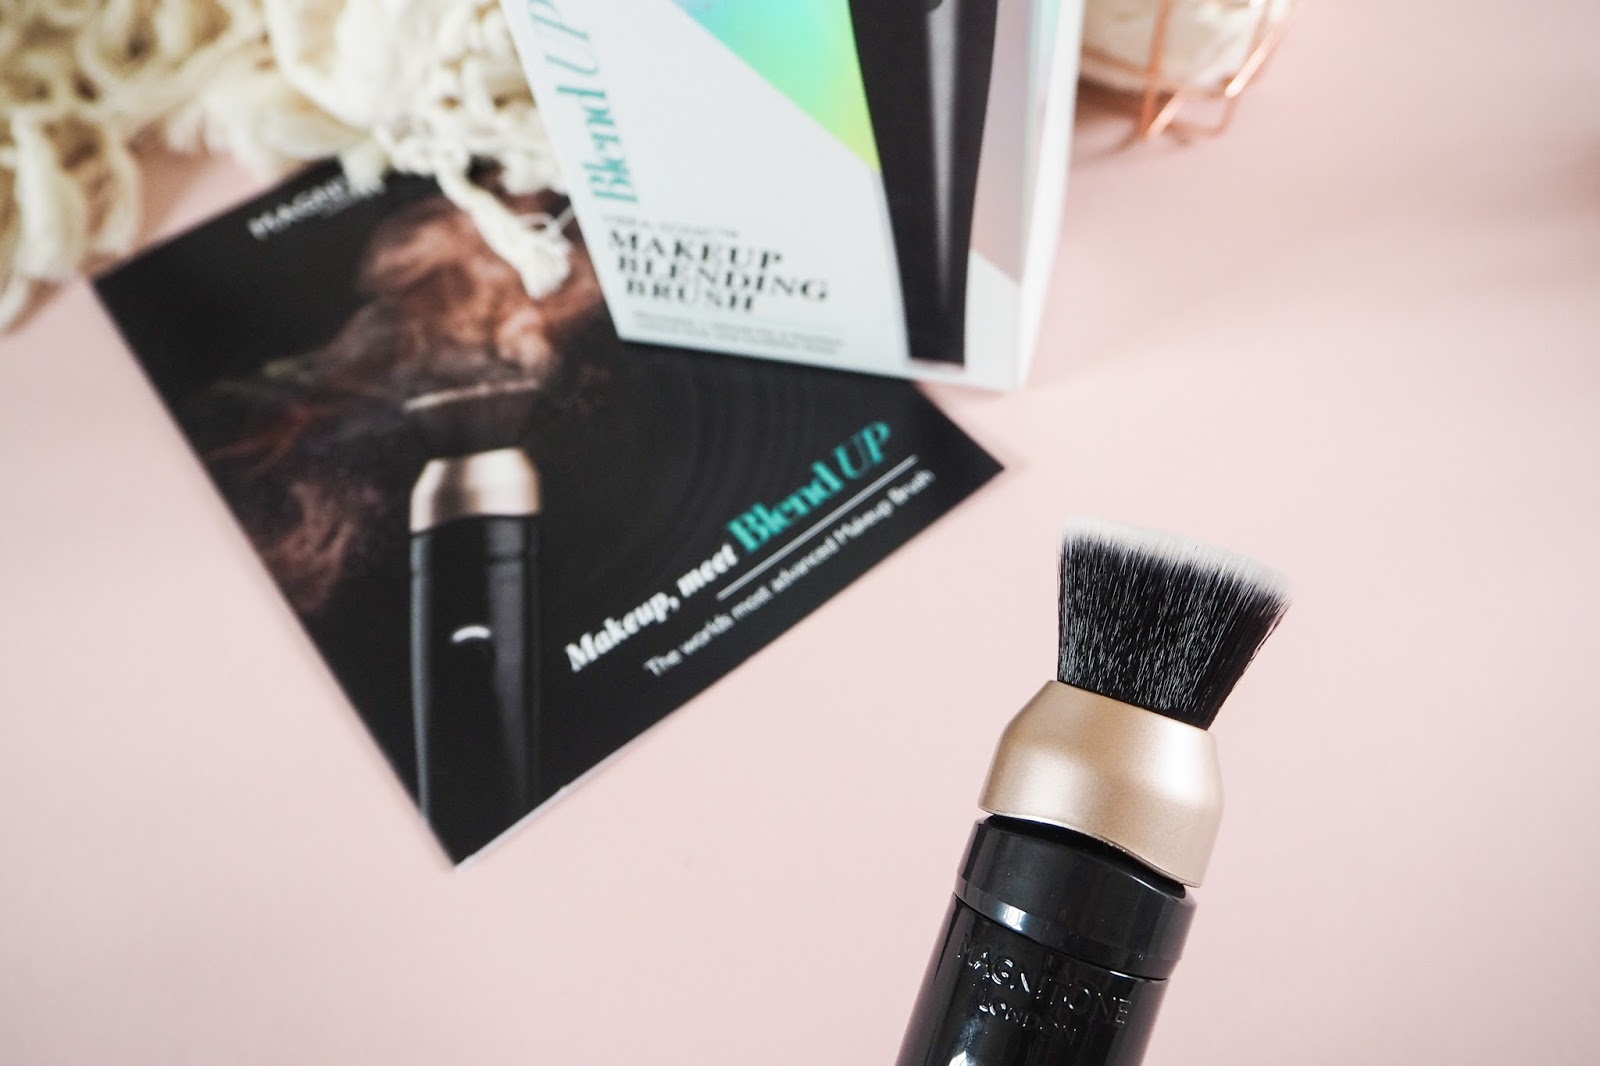 Magnitone BlendUp Vibra-Sonic Makeup Blending Brush Review